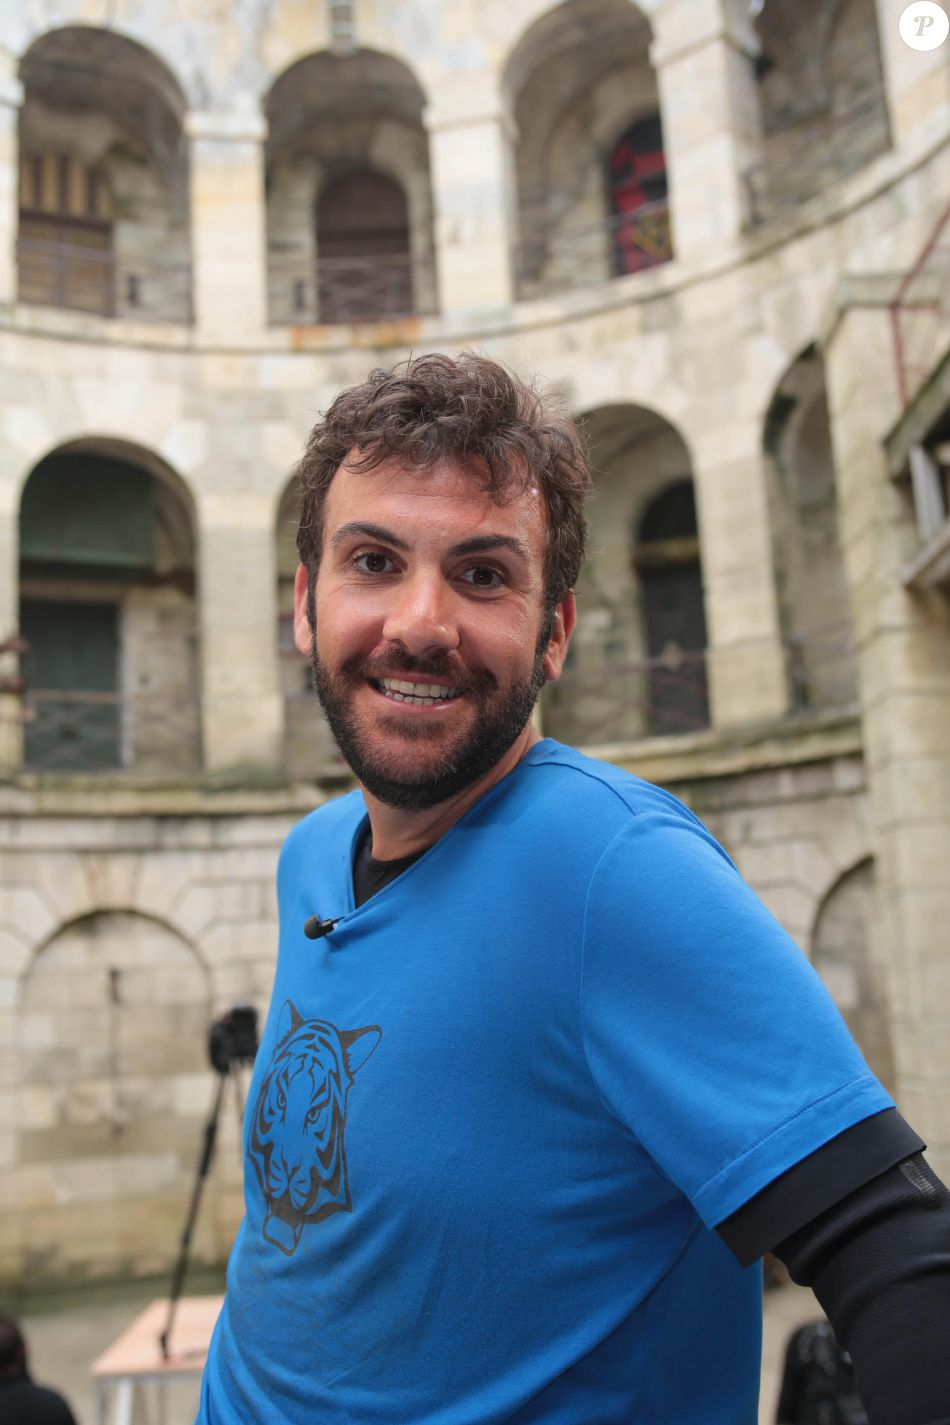 laurent ournac dans fort boyard diffus le 16 juillet 2016 sur france 2 purepeople. Black Bedroom Furniture Sets. Home Design Ideas